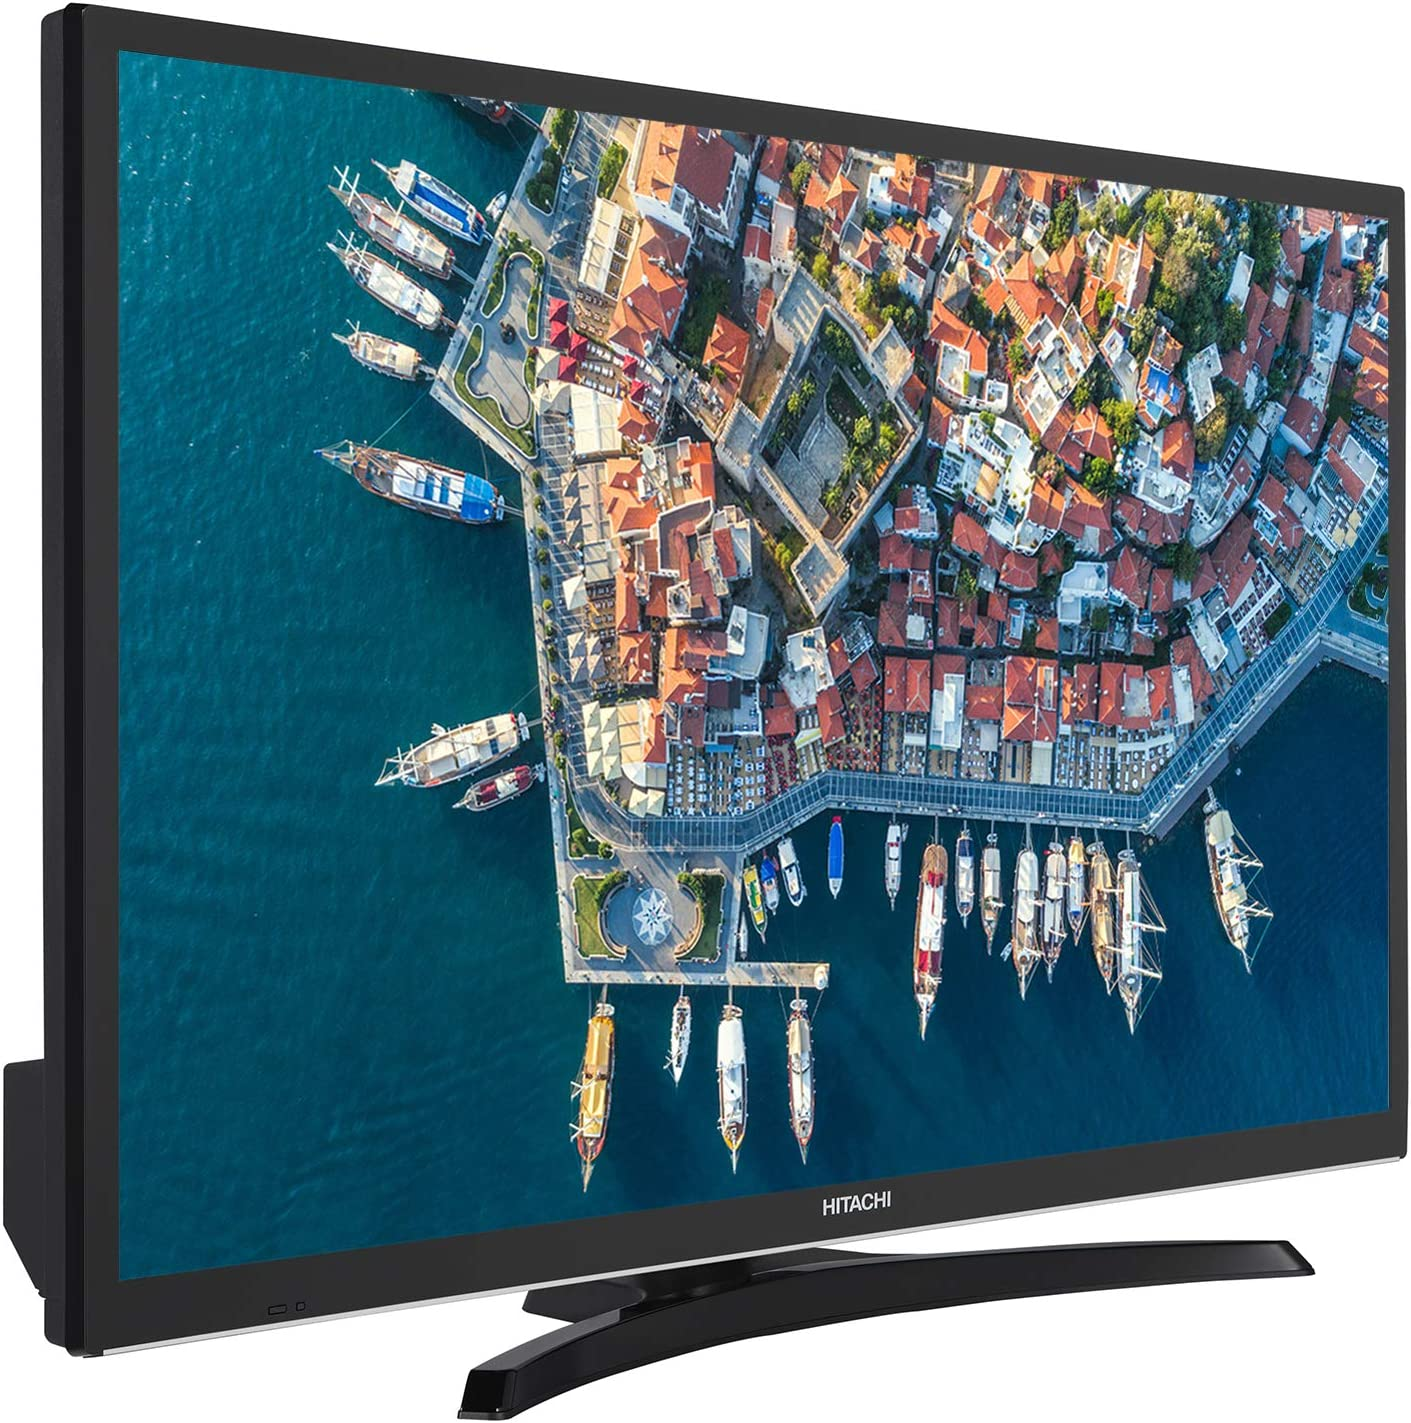 Hitachi (F32E4000) Smart TV PVR 32